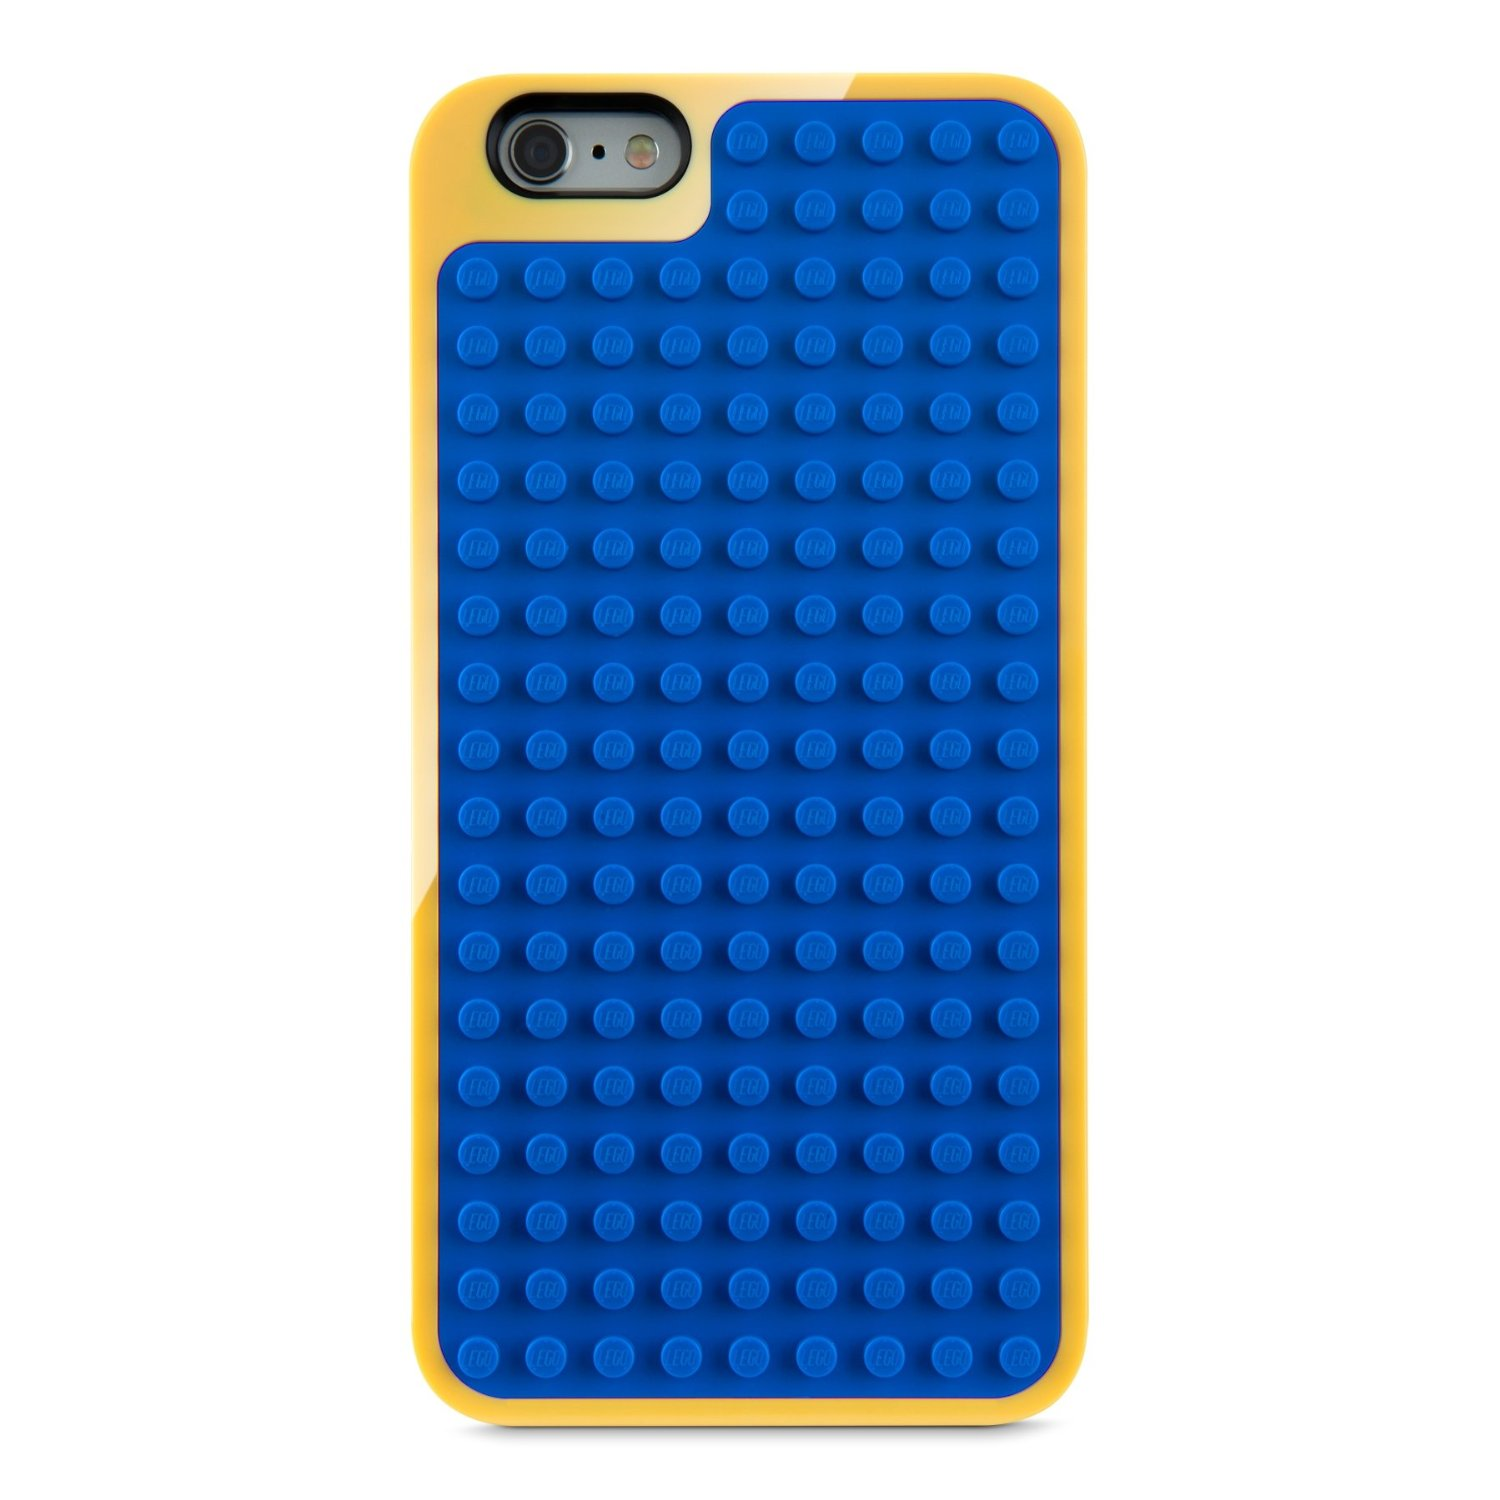 Lego Phone Case Cover